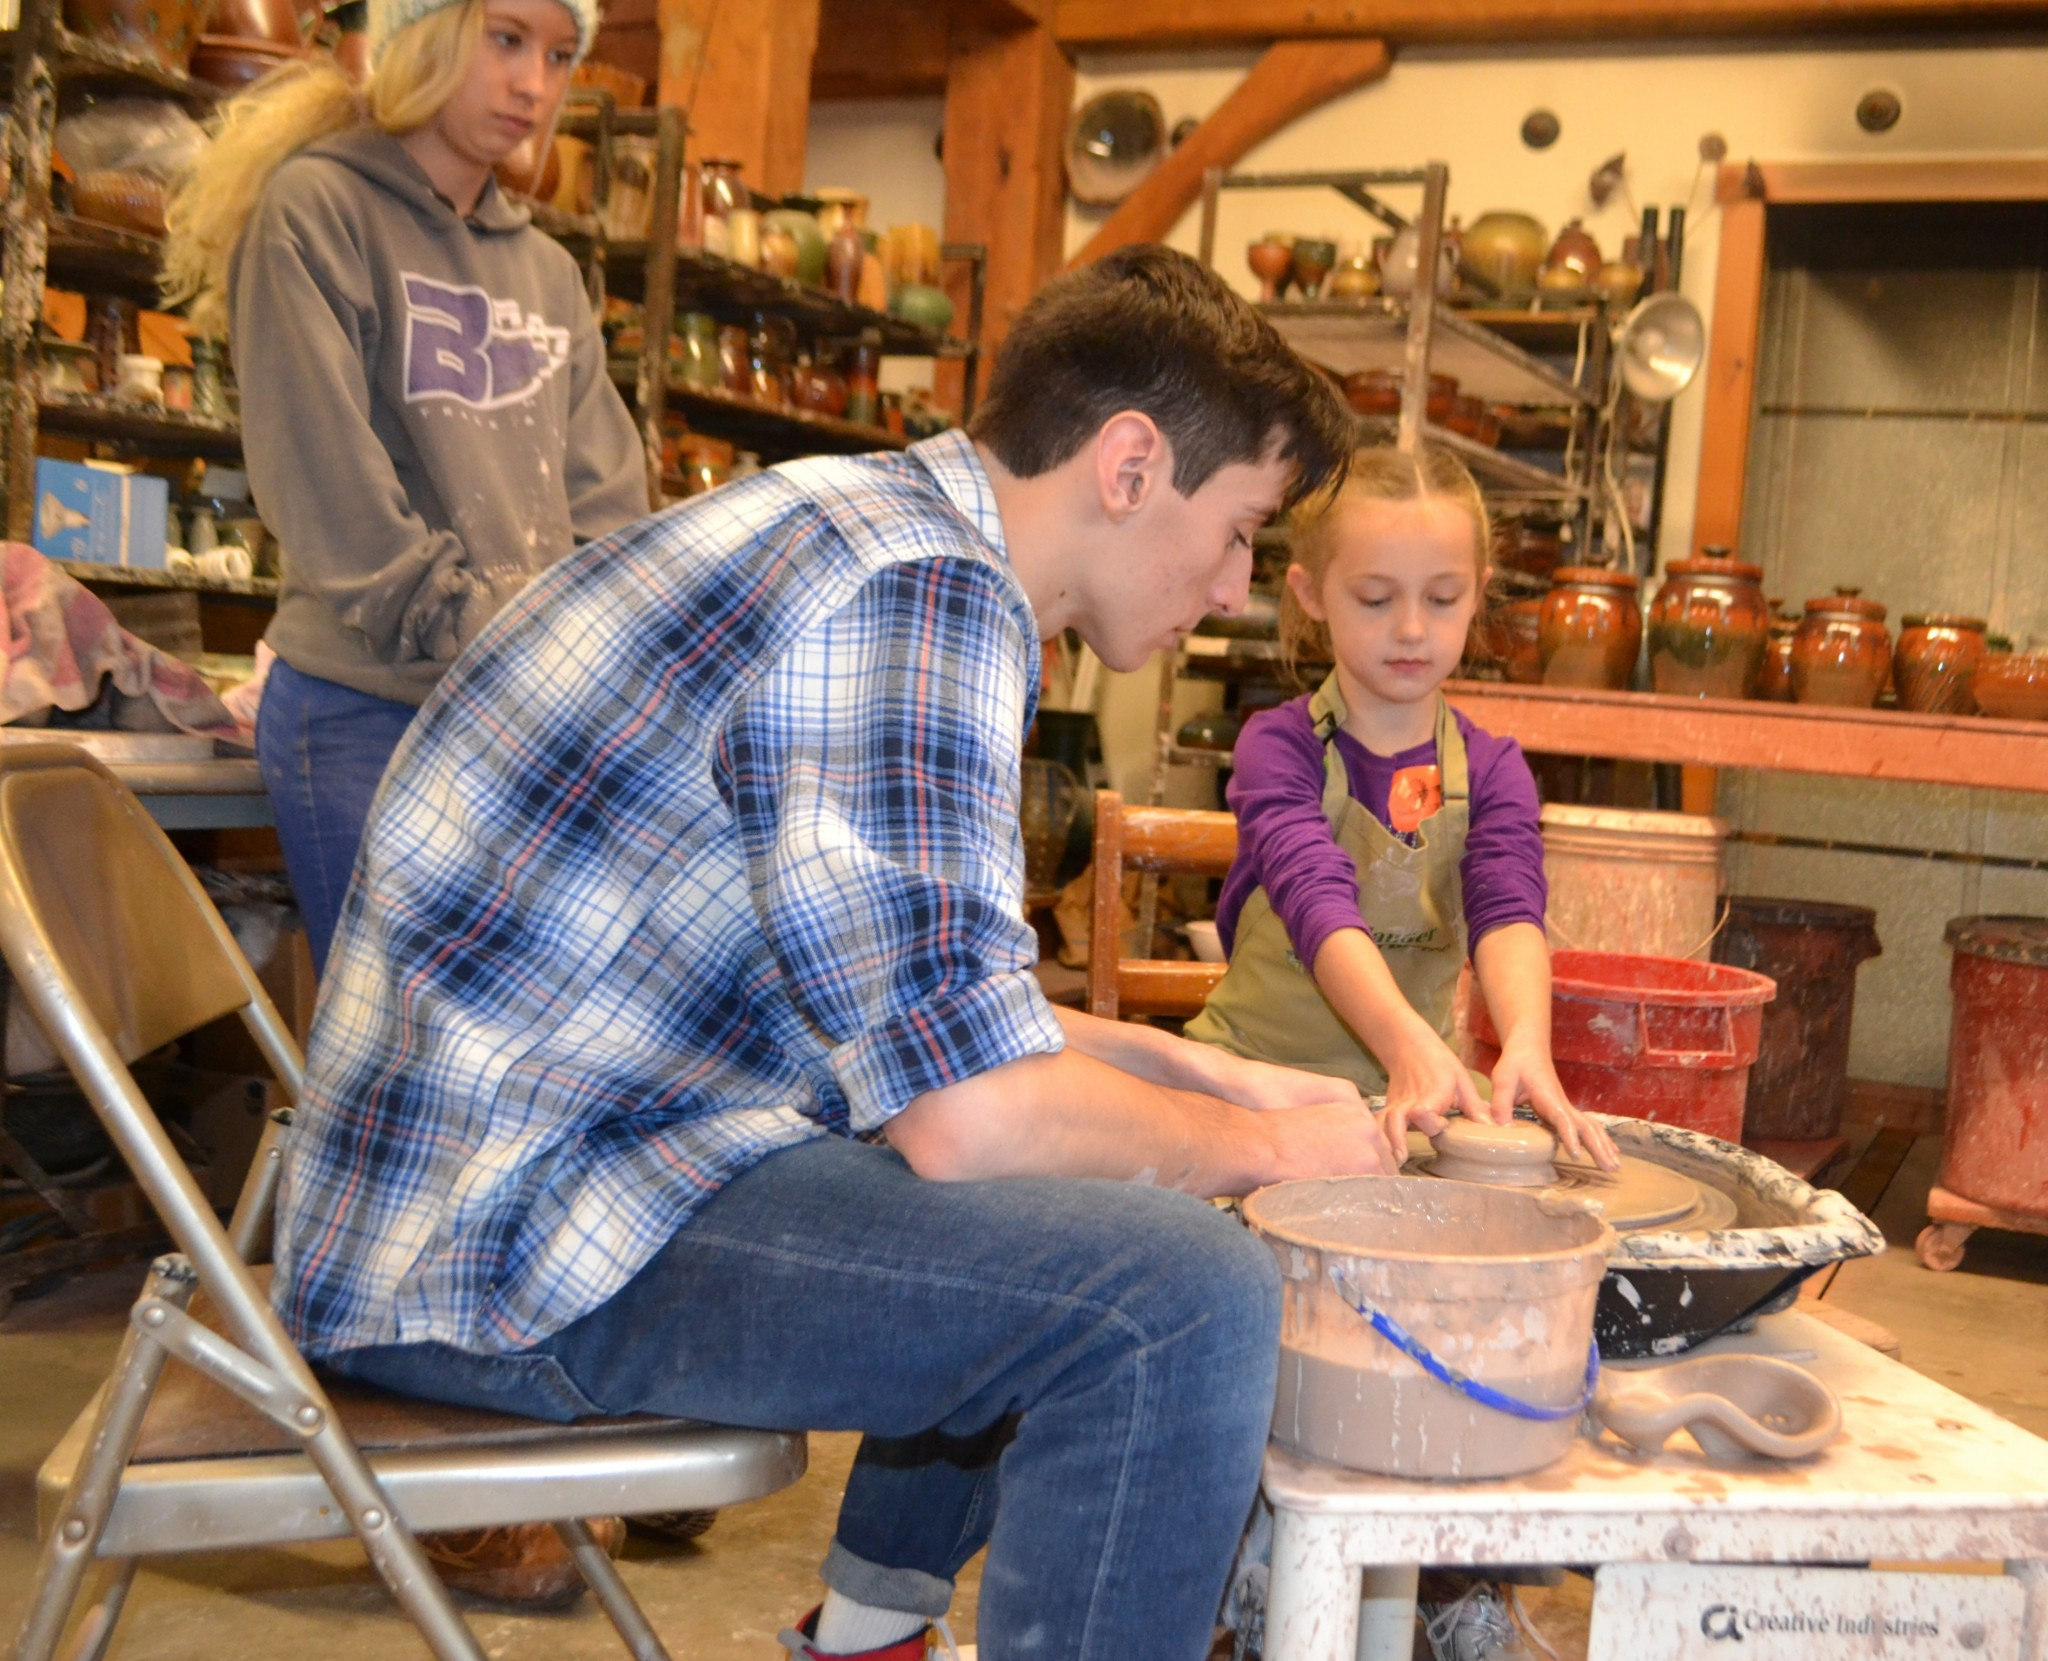 Sauder Village will wind up the 2019 regular season with the Explore the Crafts event as well as the 33rd Annual Woodcarver's Show and Sale Oct. 26 and 27. (Submitted photo)